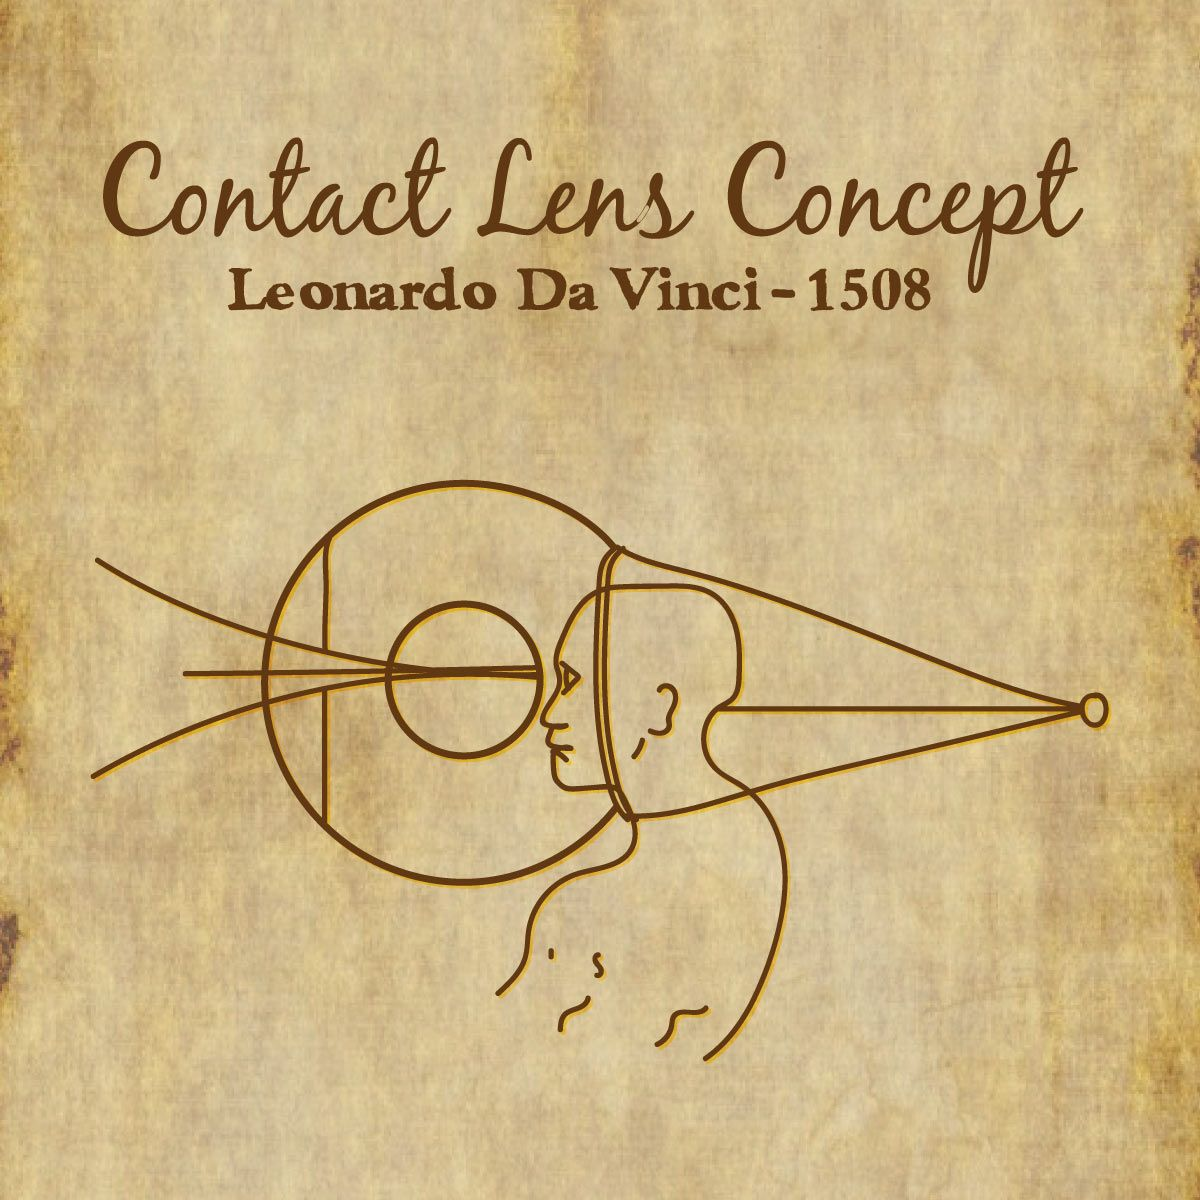 History of Contact Lens